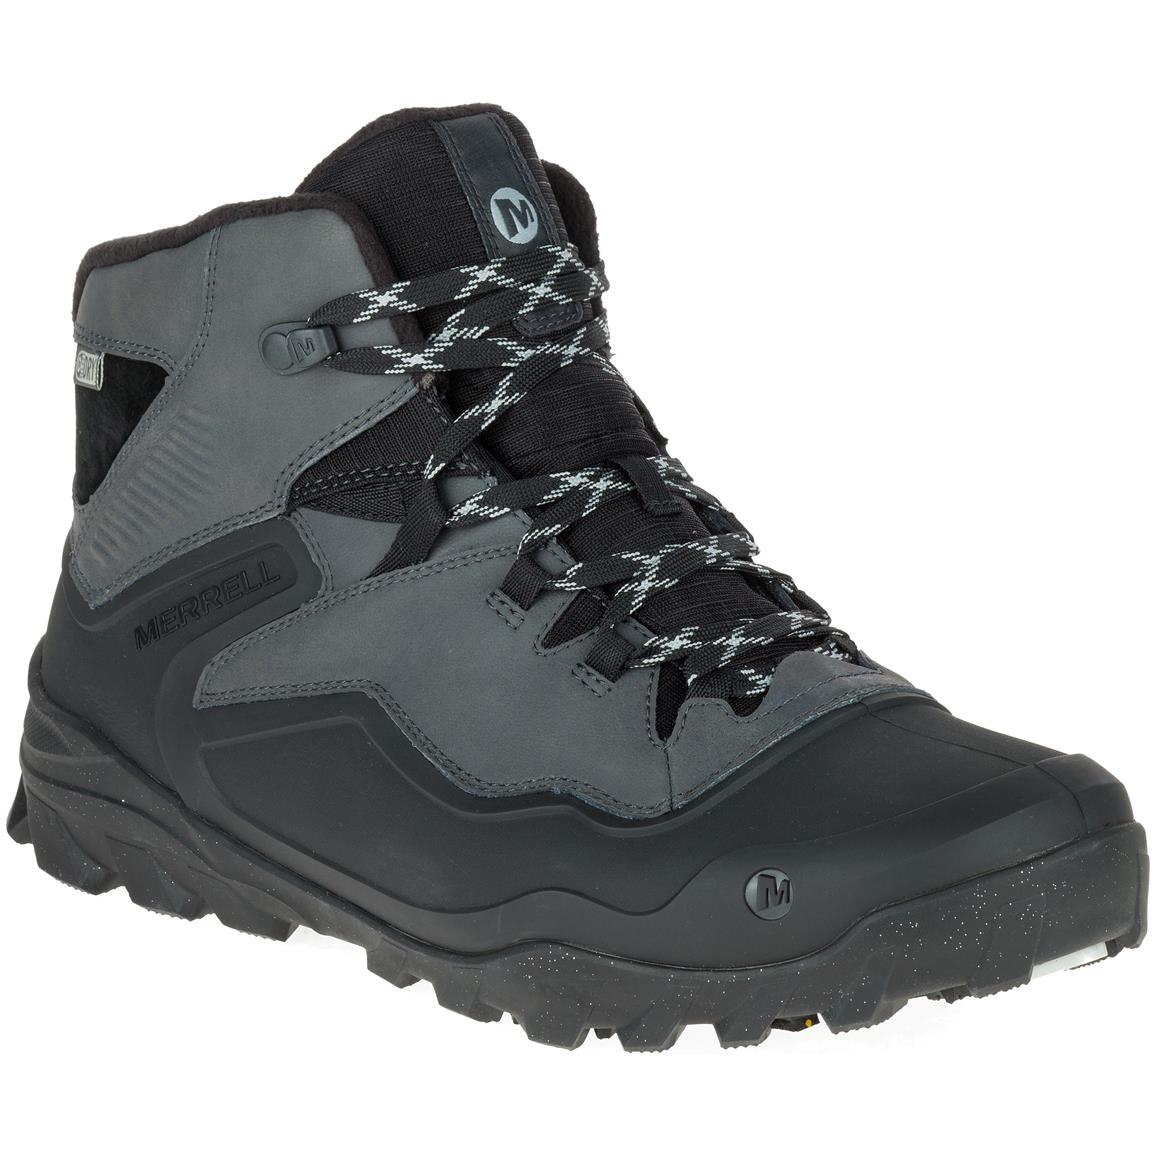 Merrell Men's Overlook 6 Ice+Waterproof Hiking Boots, 200 Gram Insulation, Granite